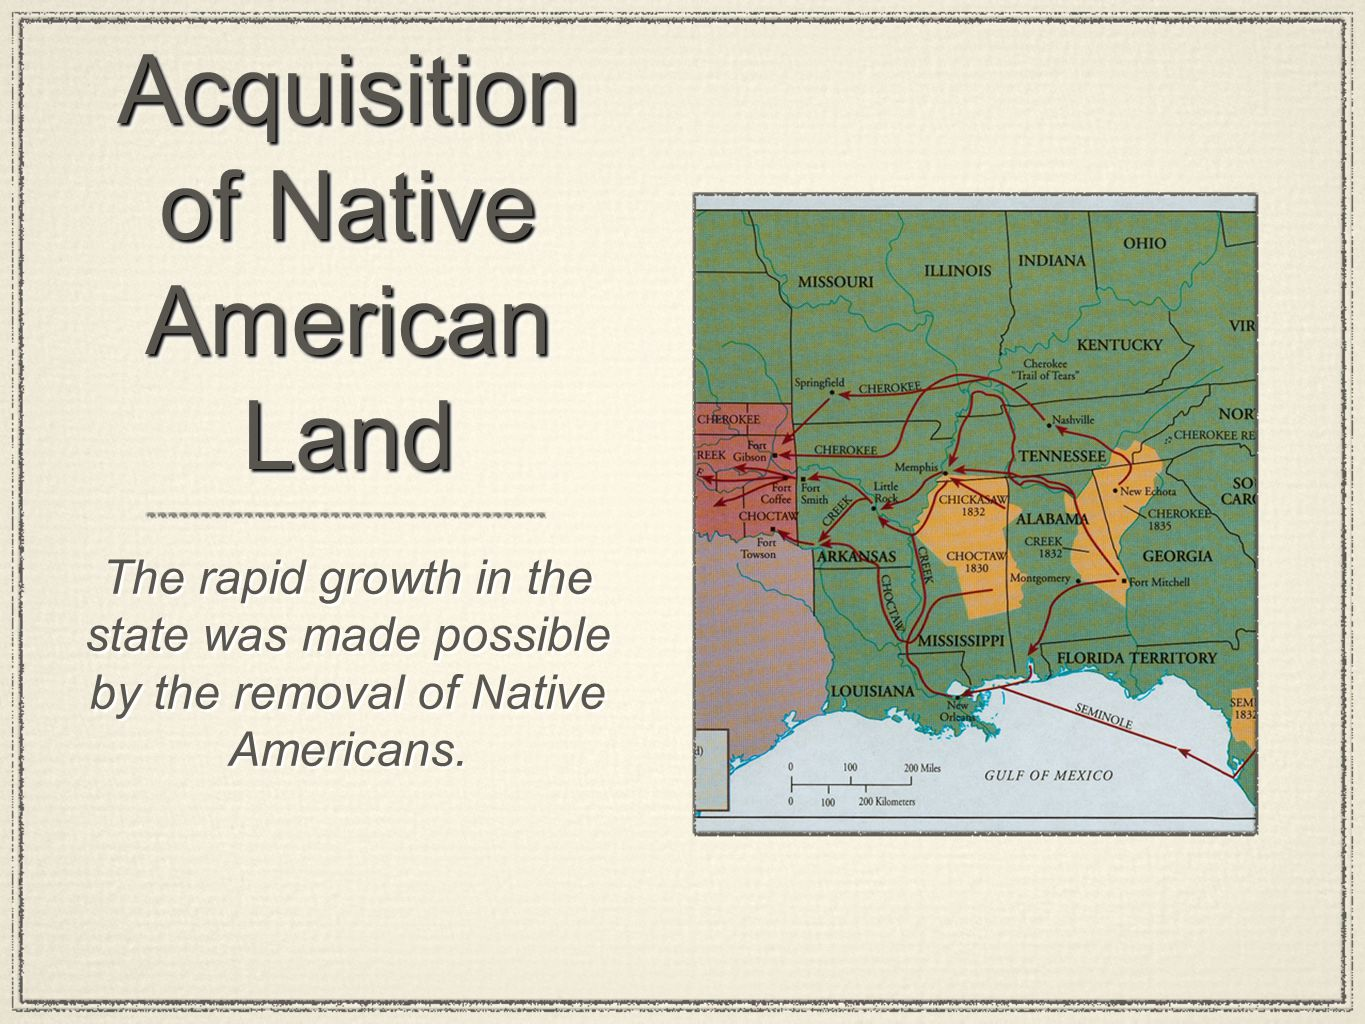 Acquisition of Native American Land The rapid growth in the state was made possible by the removal of Native Americans.